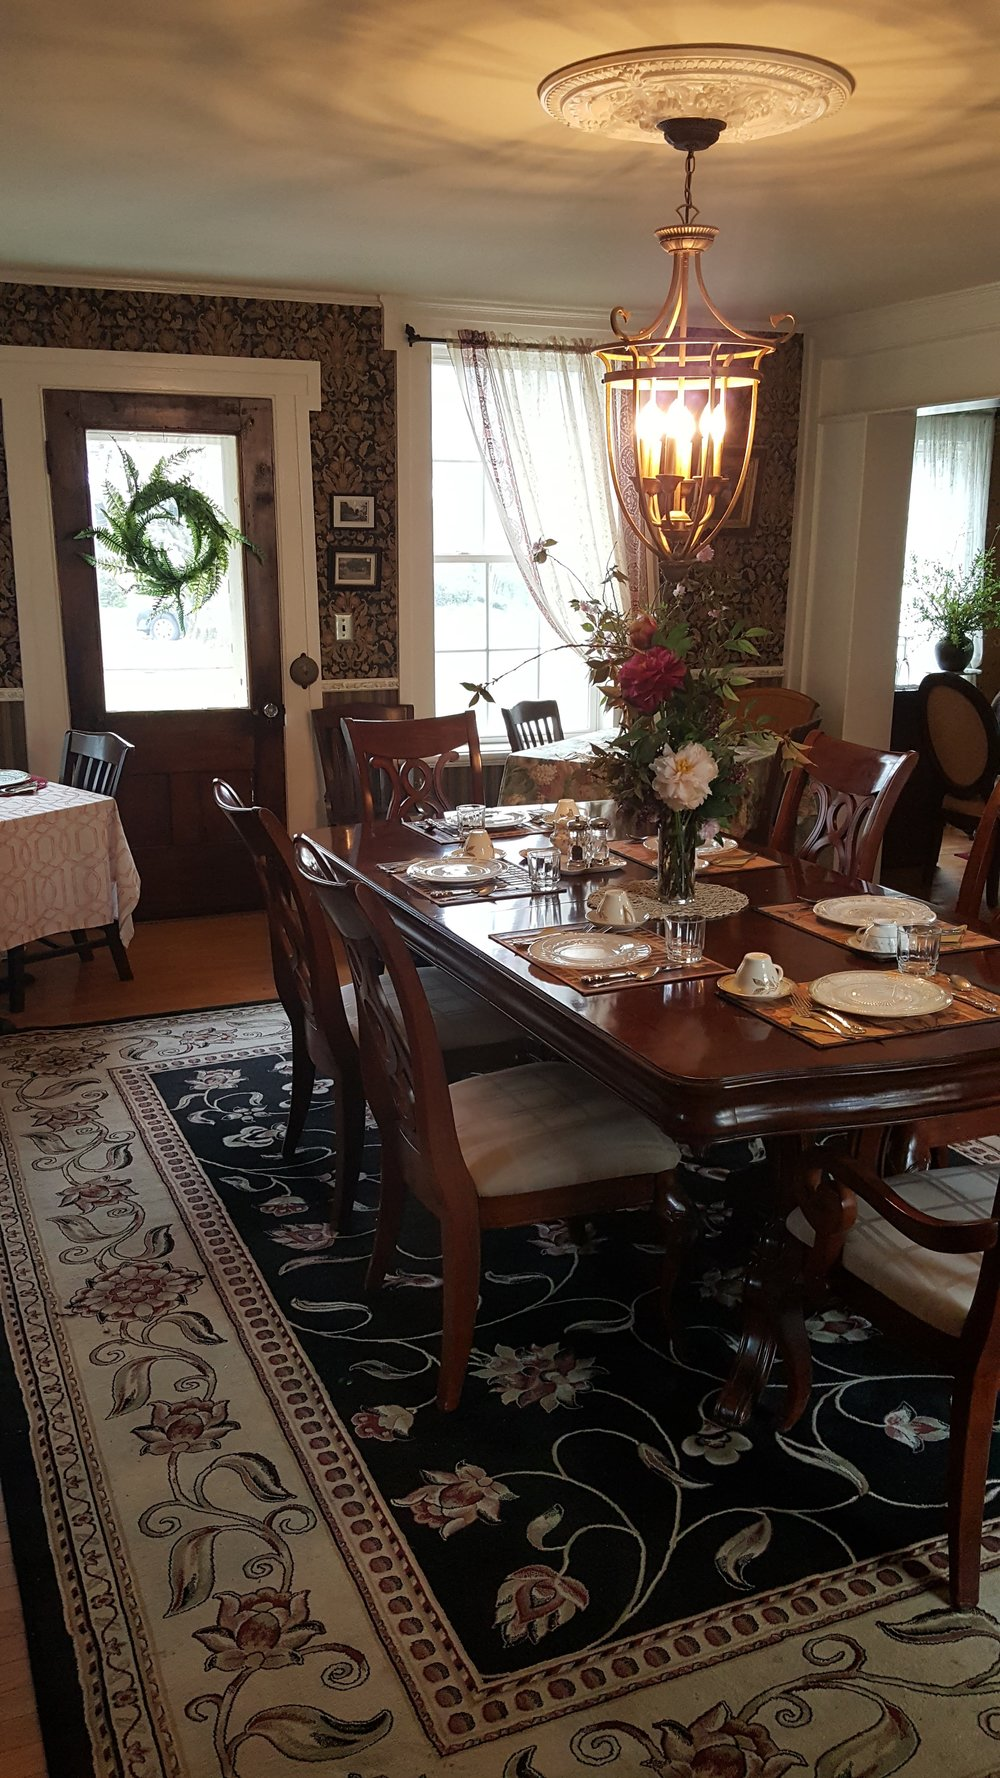 DINING ROOM EAST2.jpg